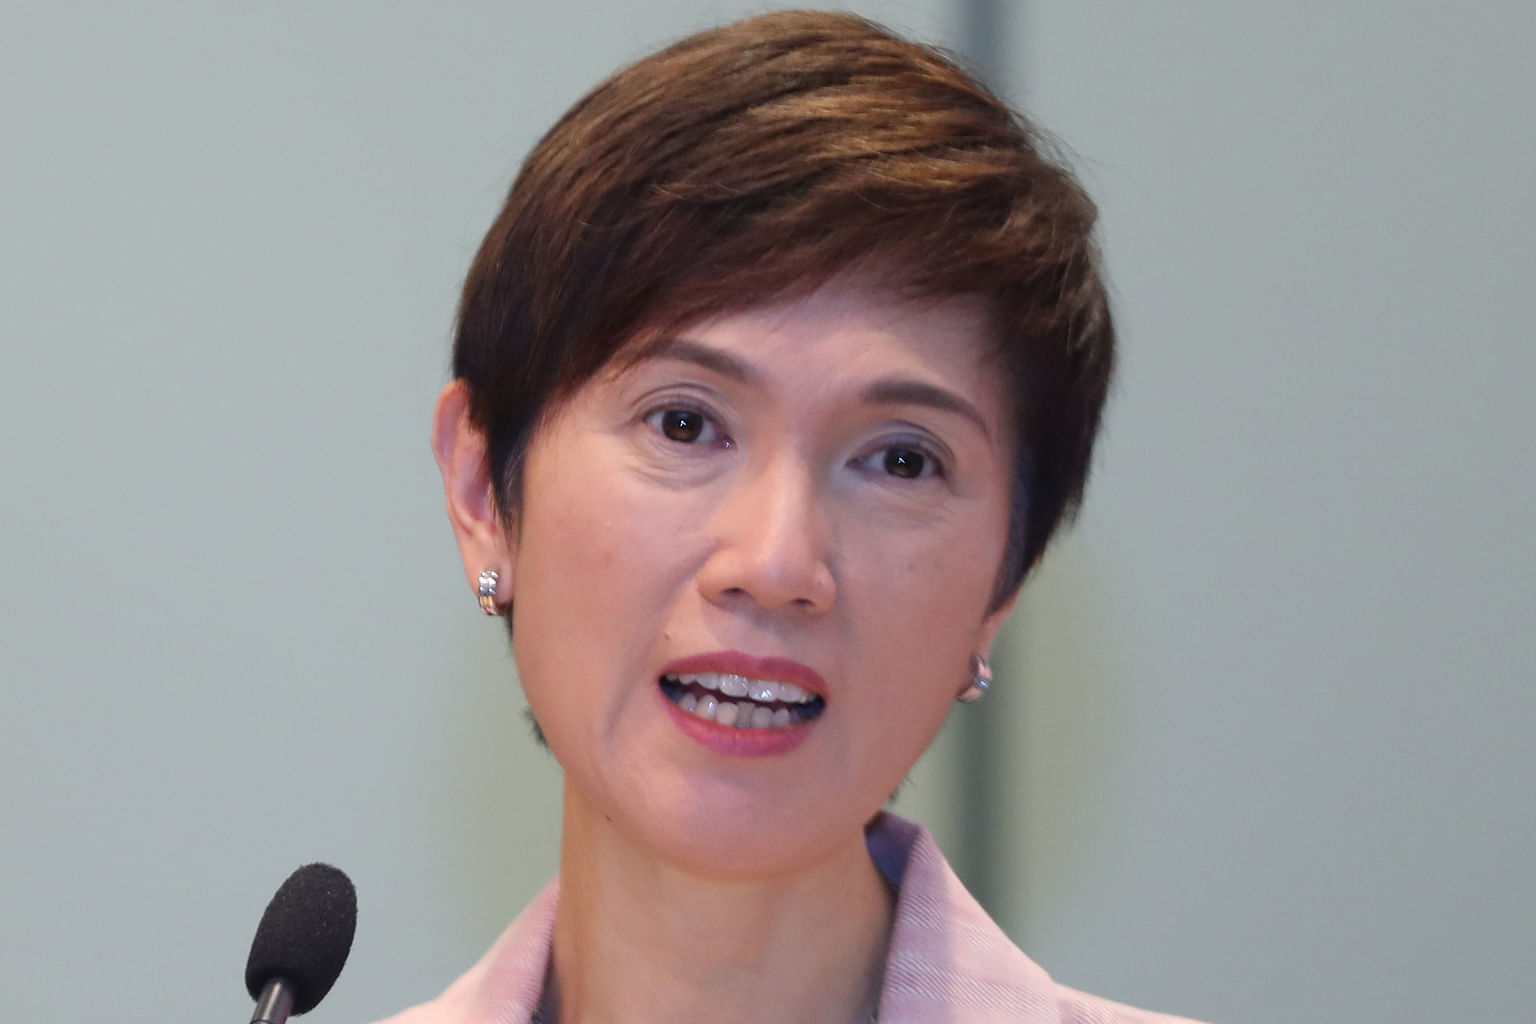 In Parliament yesterday, Manpower Minister Josephine Teo said the Adapt and Grow initiative has helped more than 48,000 local job seekers get placed in PMET roles over the past three years, and that Workforce Singapore and industry agencies also plac